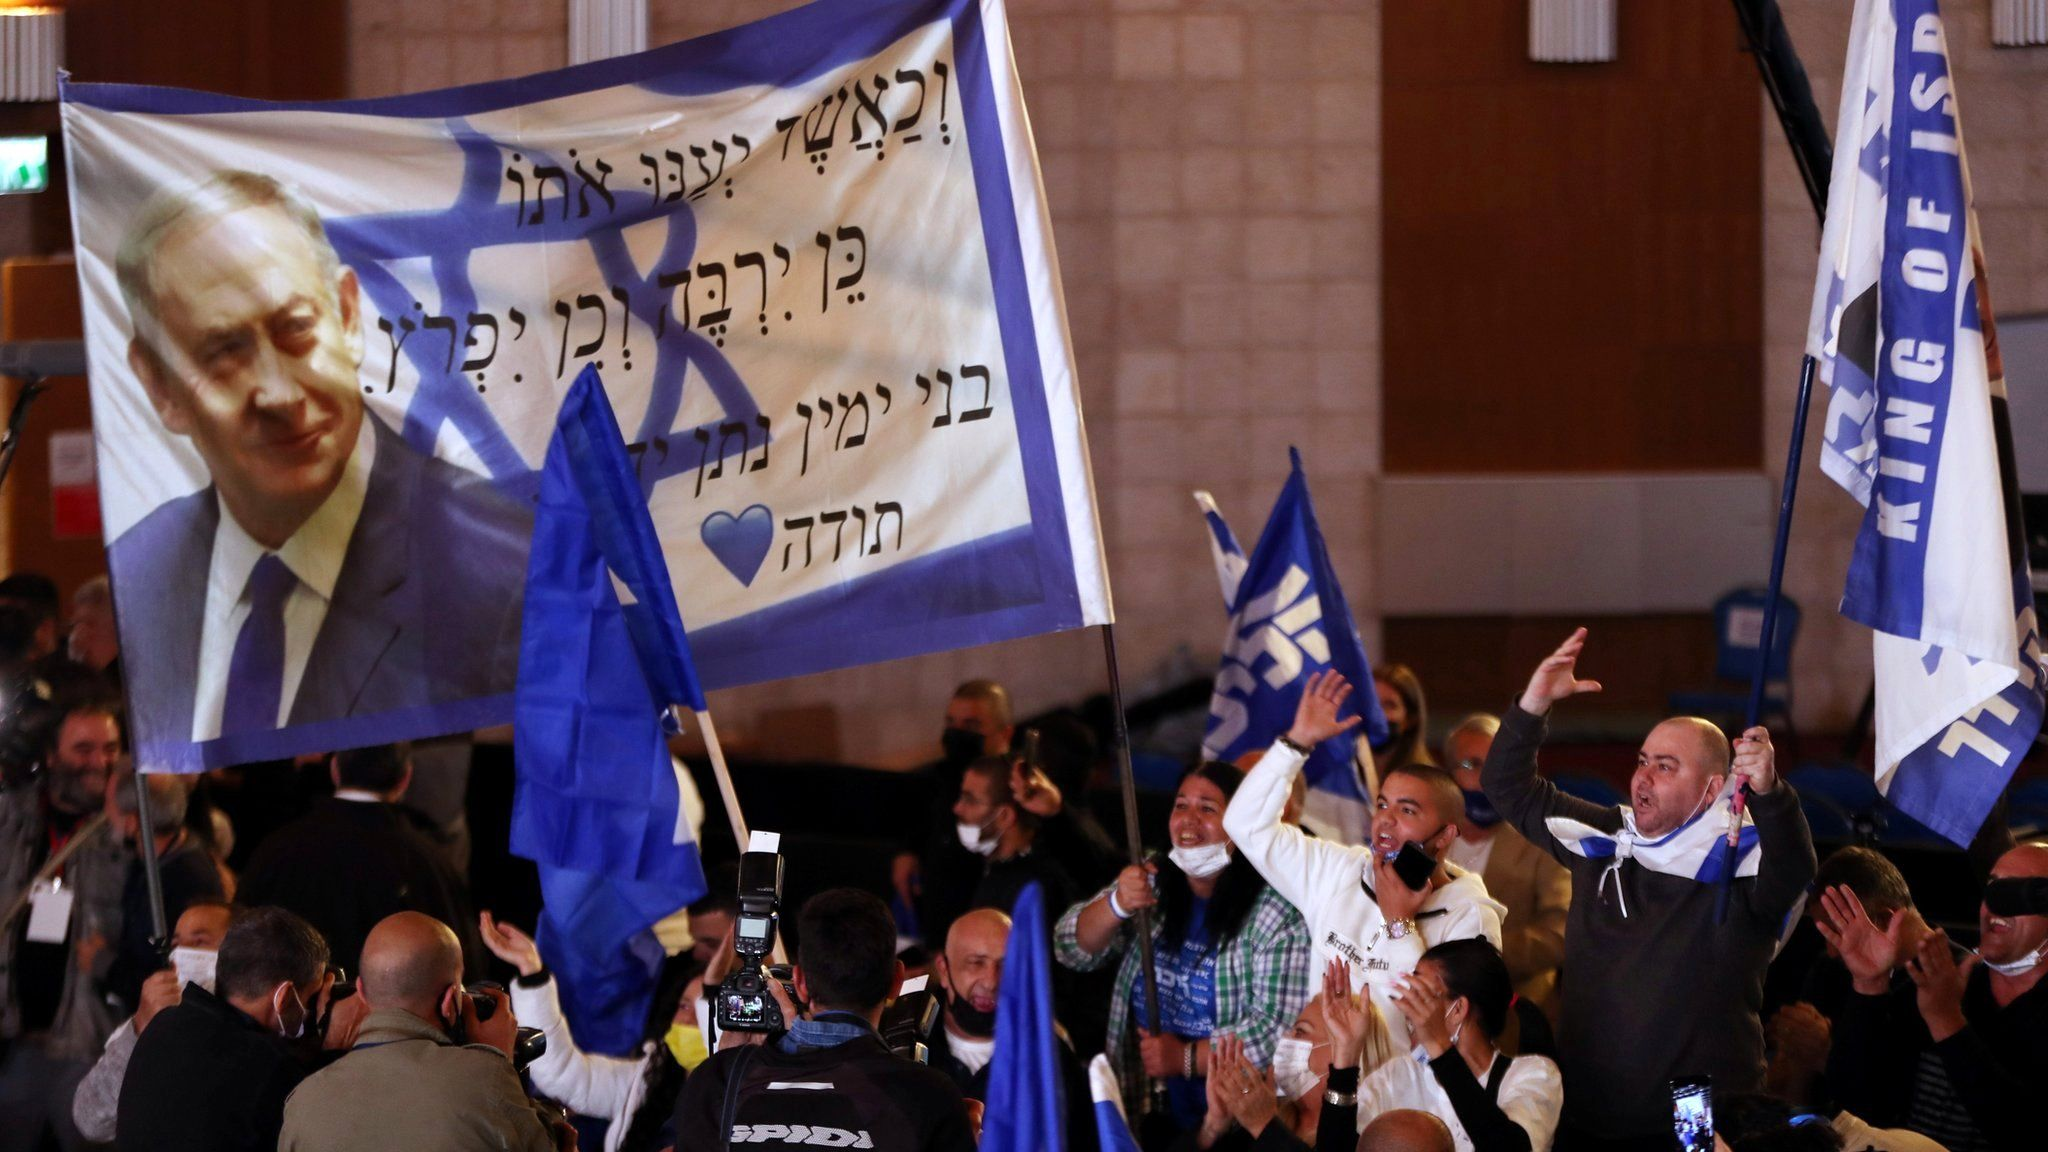 3rd LD: Netanyahu claims victory in Israeli elections